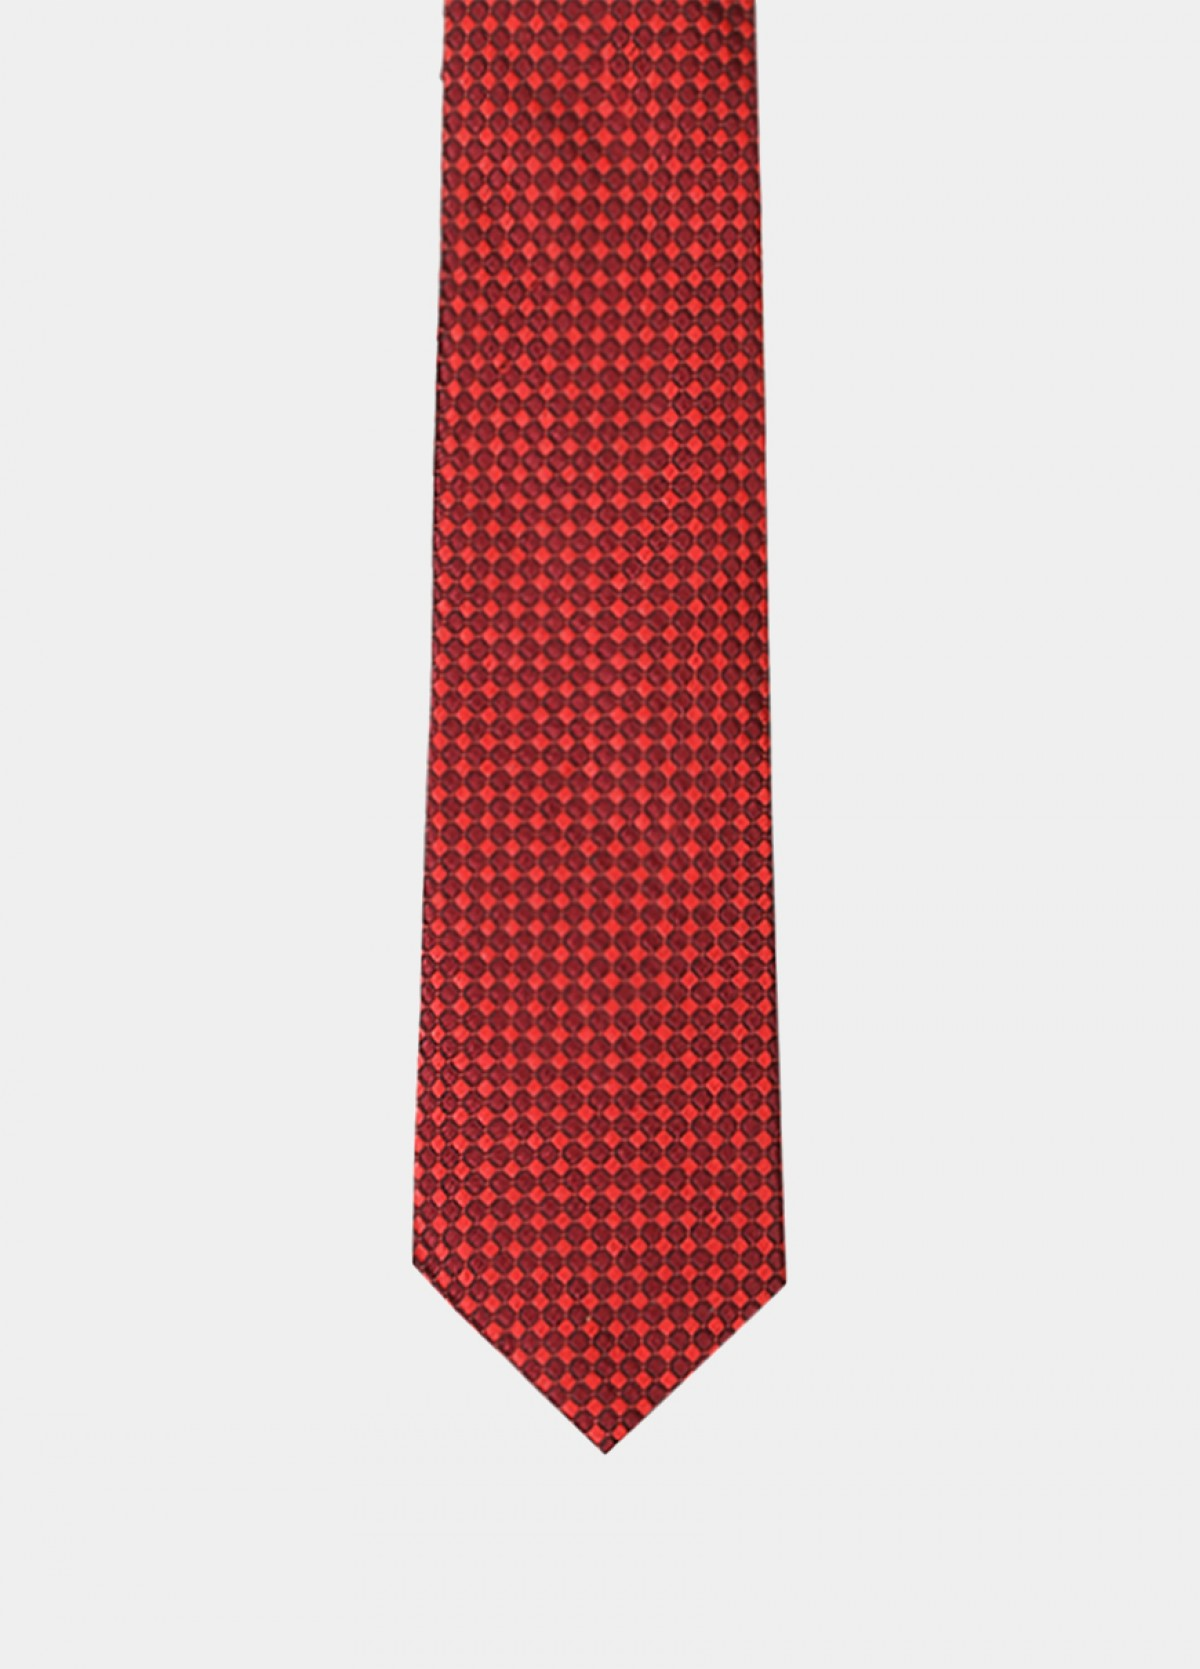 The Red Silk Tie